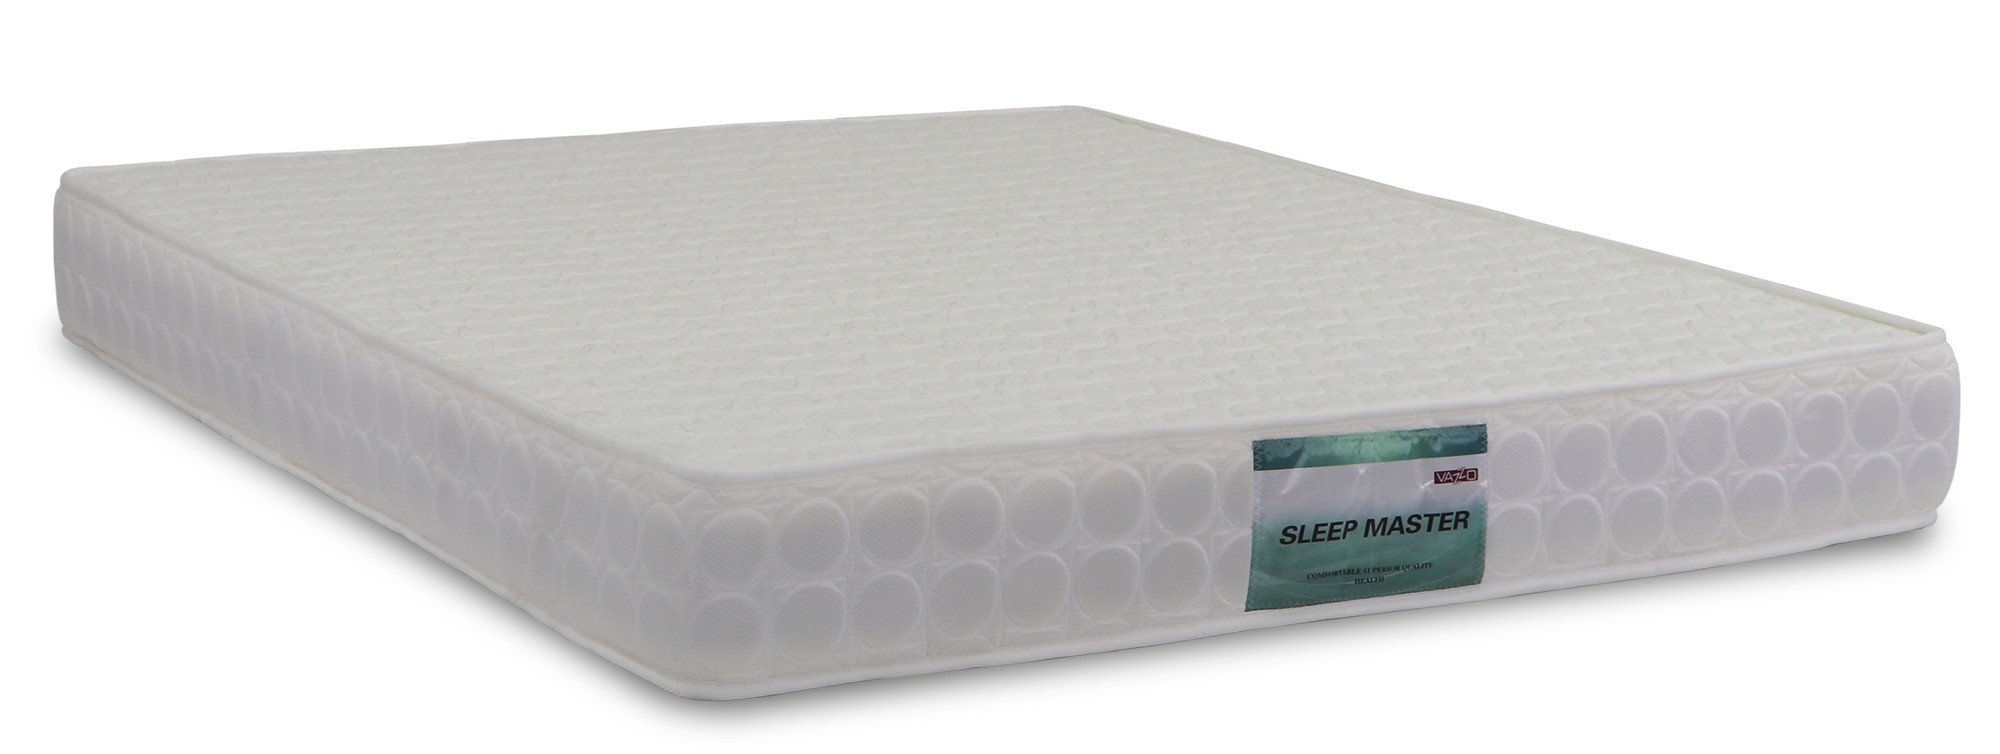 Vazzo Sleep Master Foam Mattress Mattresses Furniture Home D Cor Fortytwo